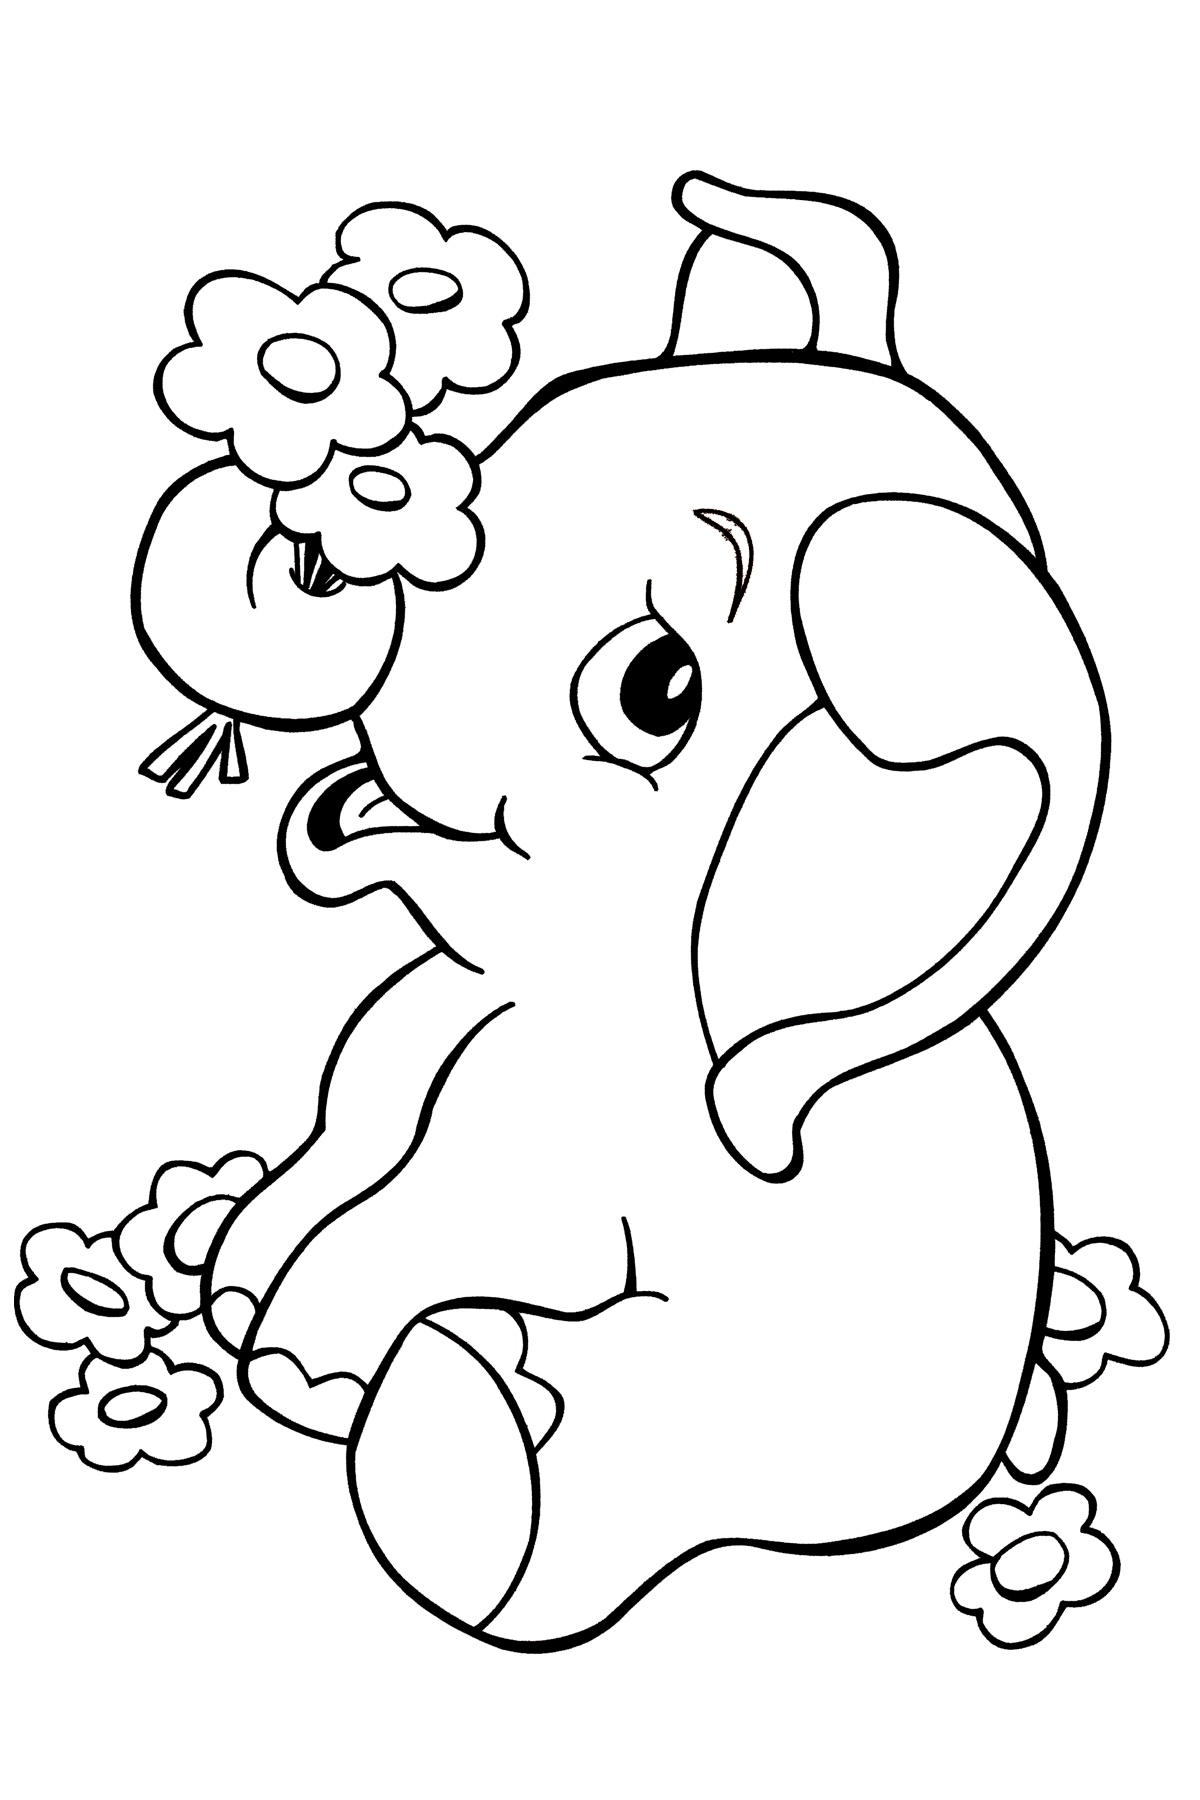 1200x1800 Elephant Coloring Page Unique Free Coloring Pages Of Elephant Face